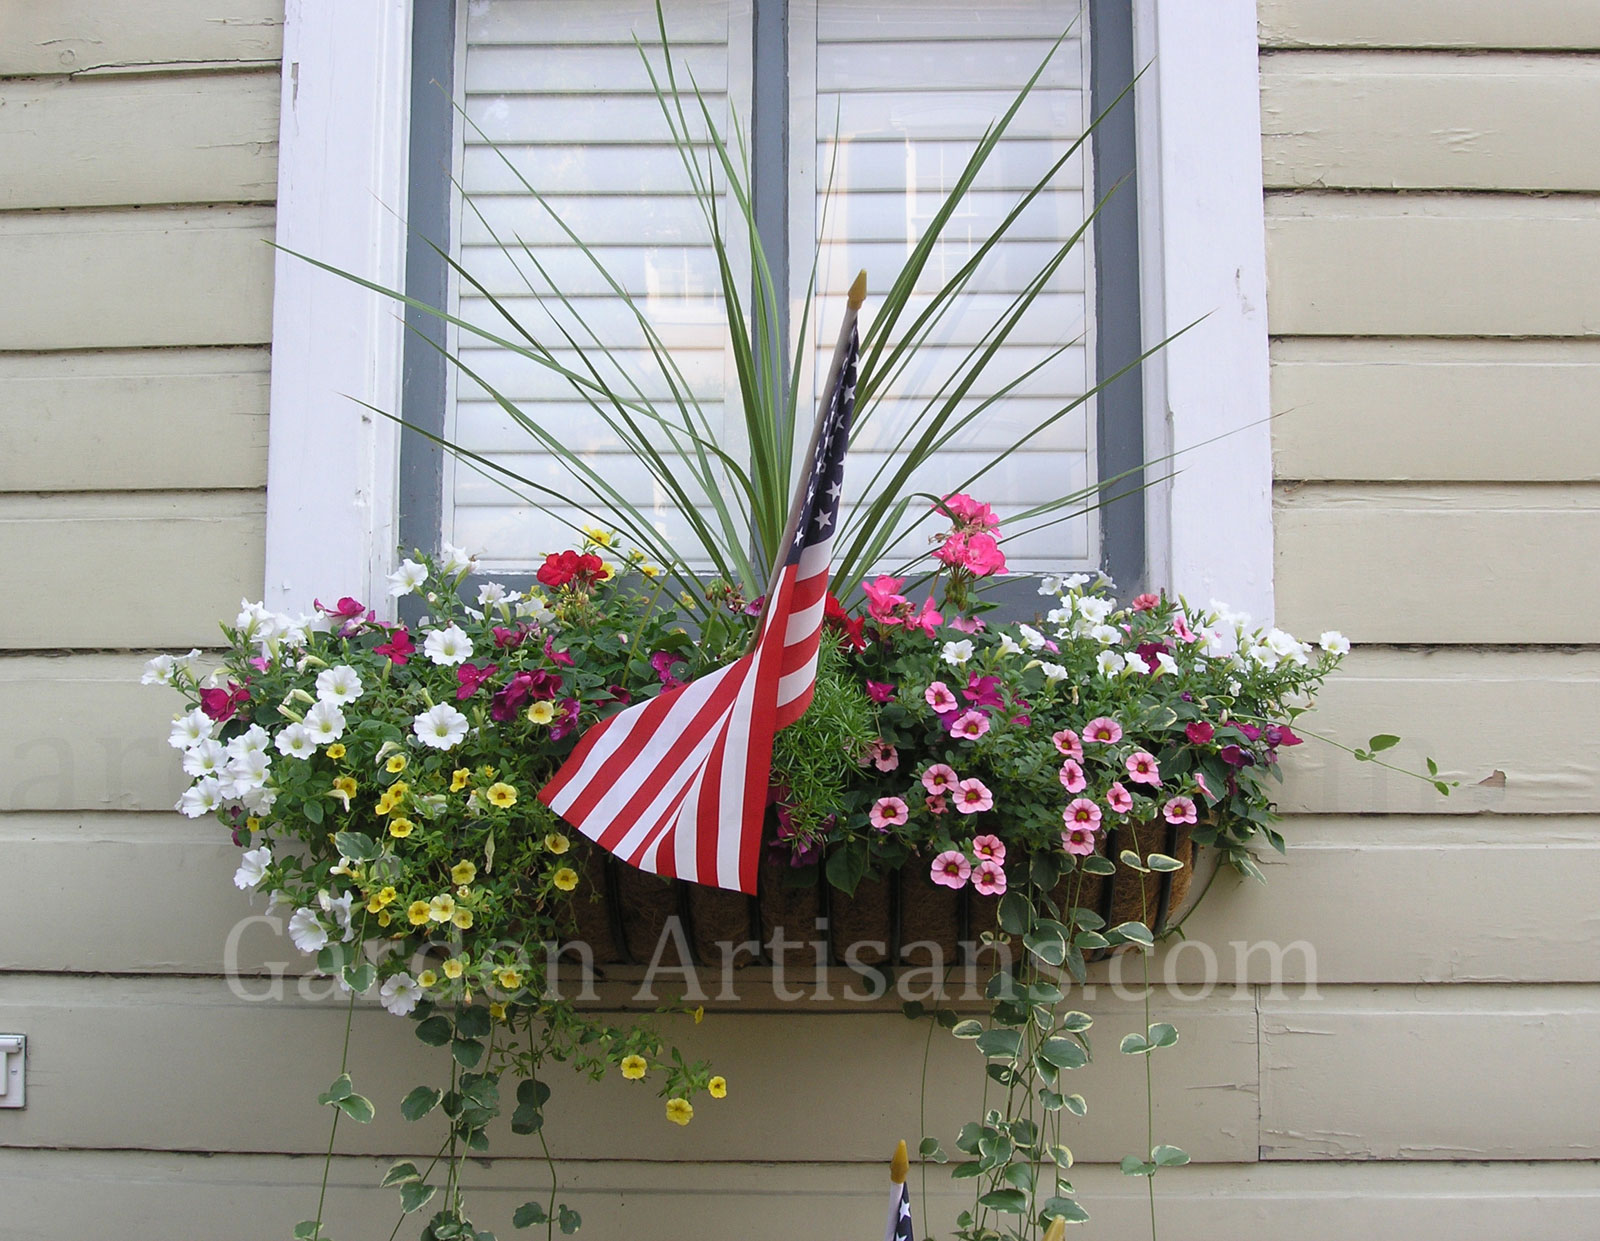 Wholesale French Country Home Decor Window Hayrack Planters Wholesale 24 Quot 30 Quot 36 Quot 40 Quot 44